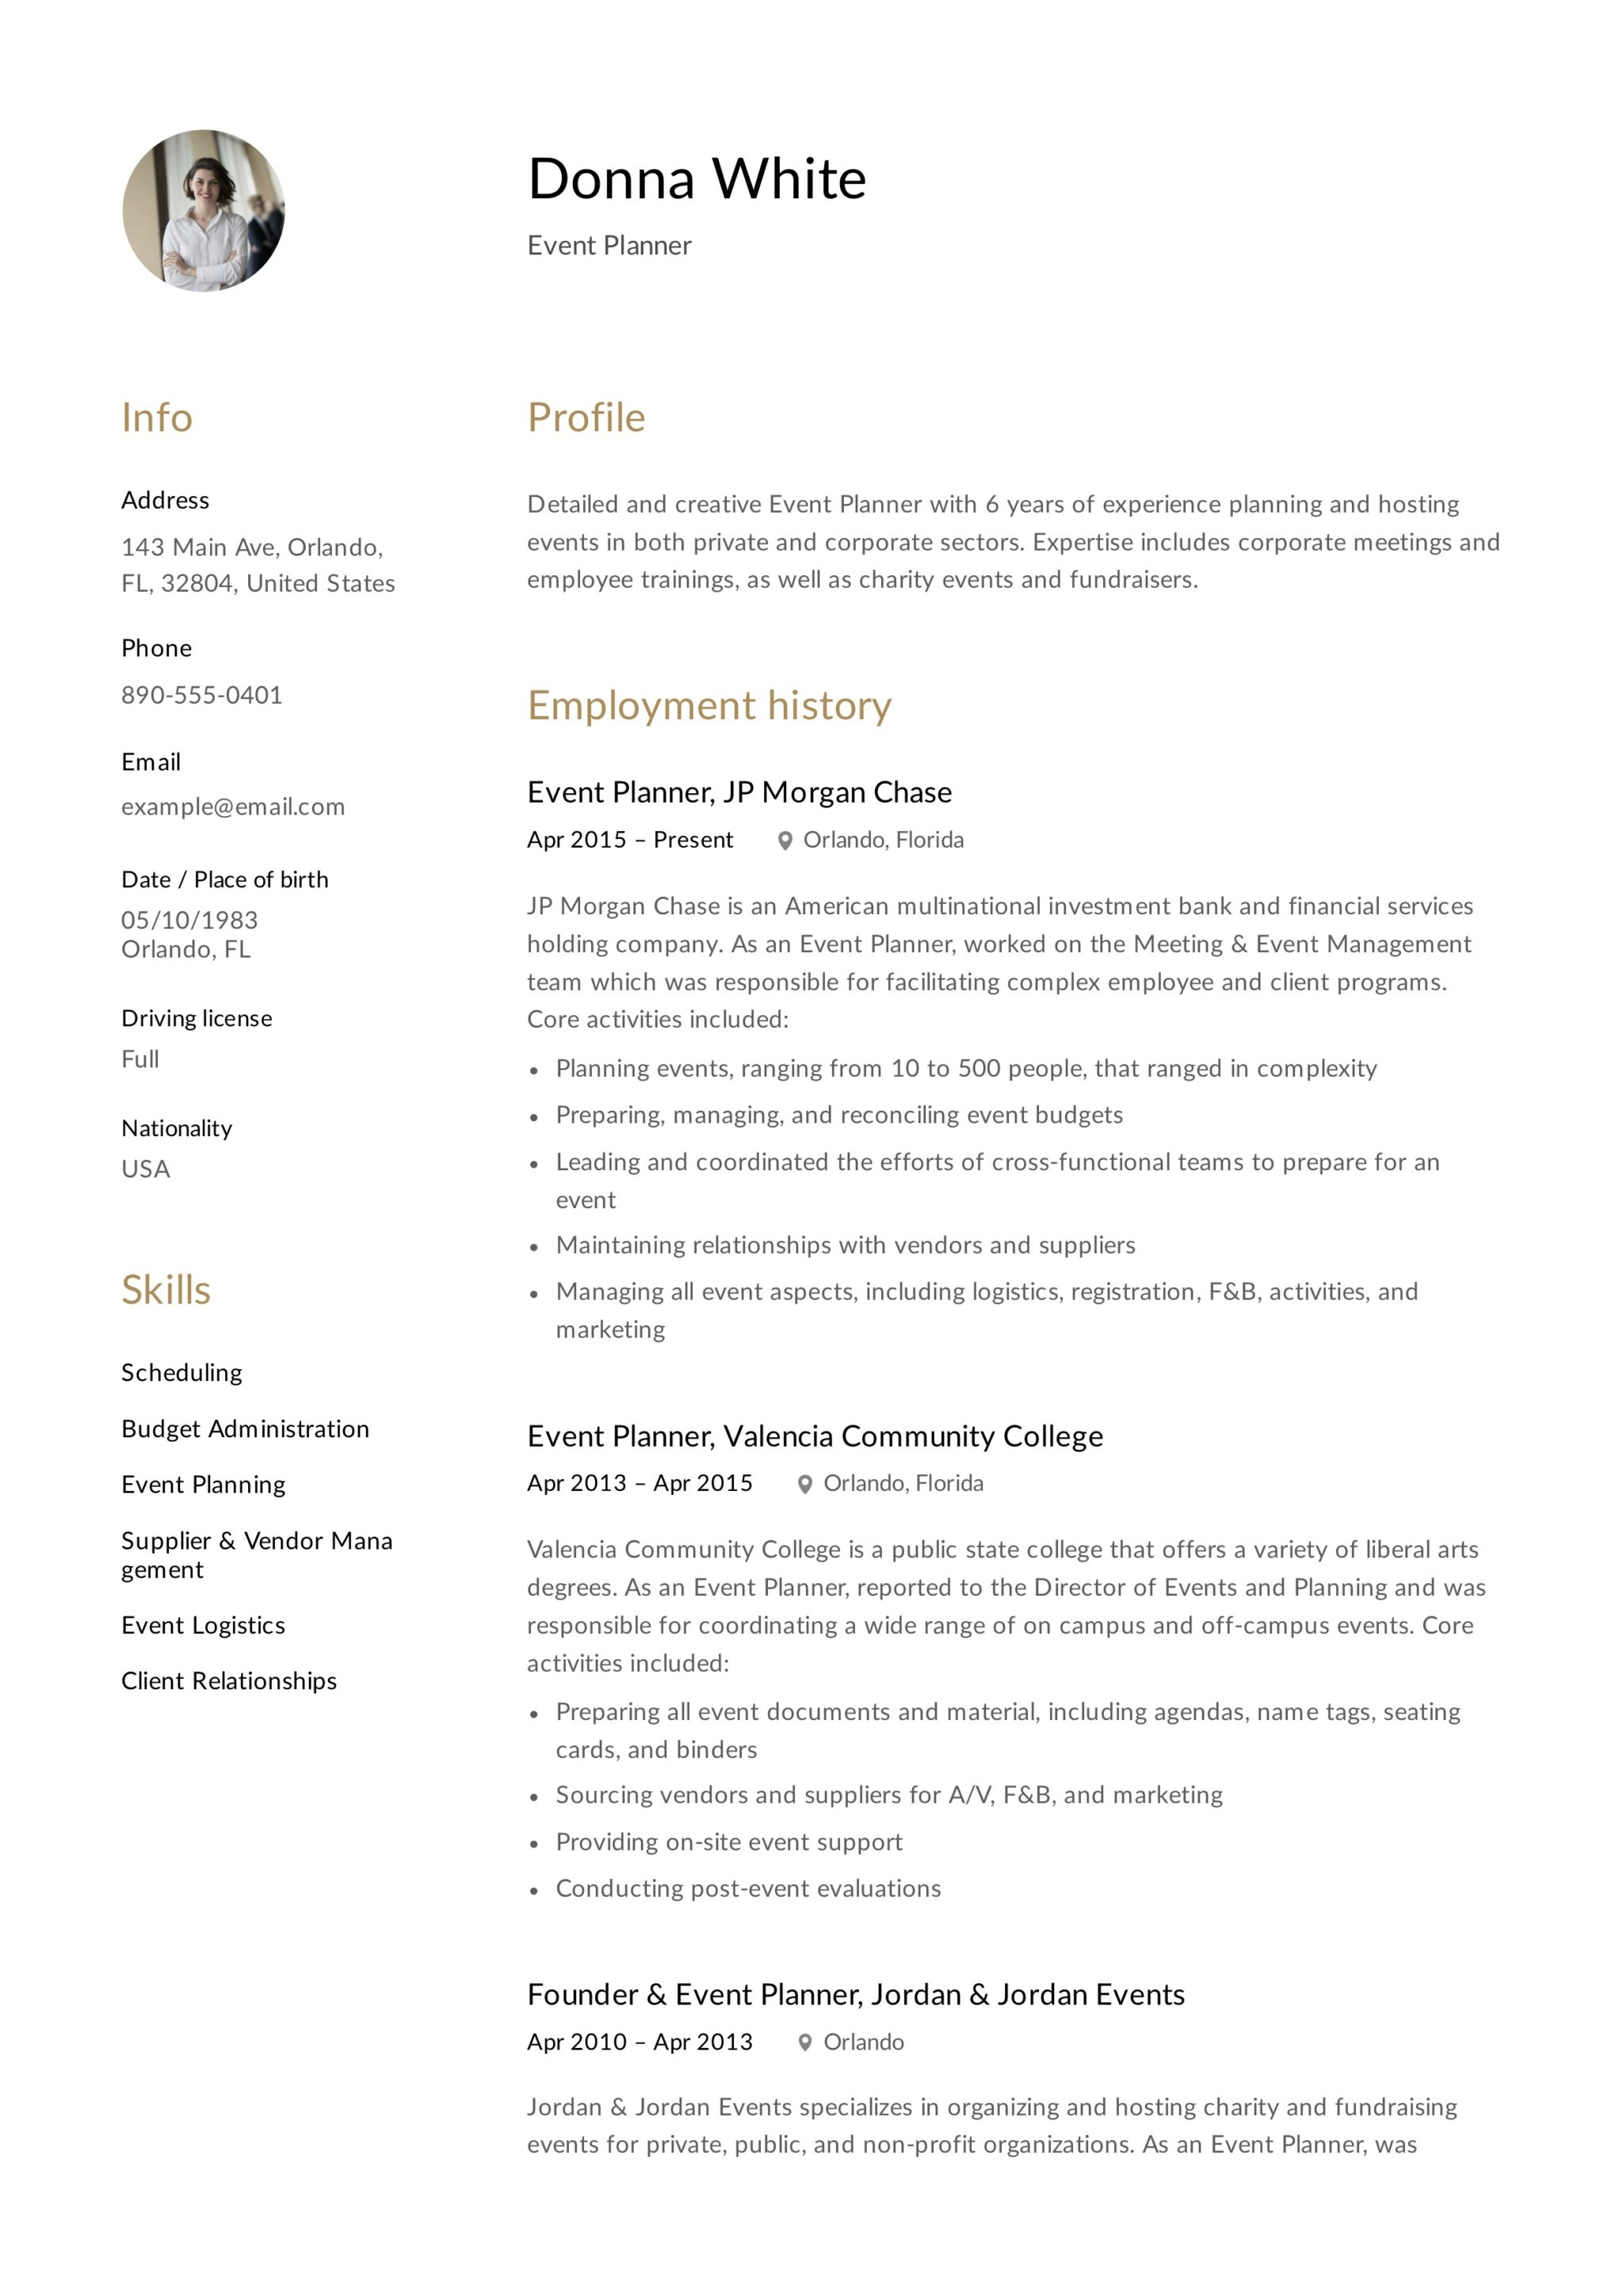 12 Free Event Planner Resume Samples and StepbyStep Guide